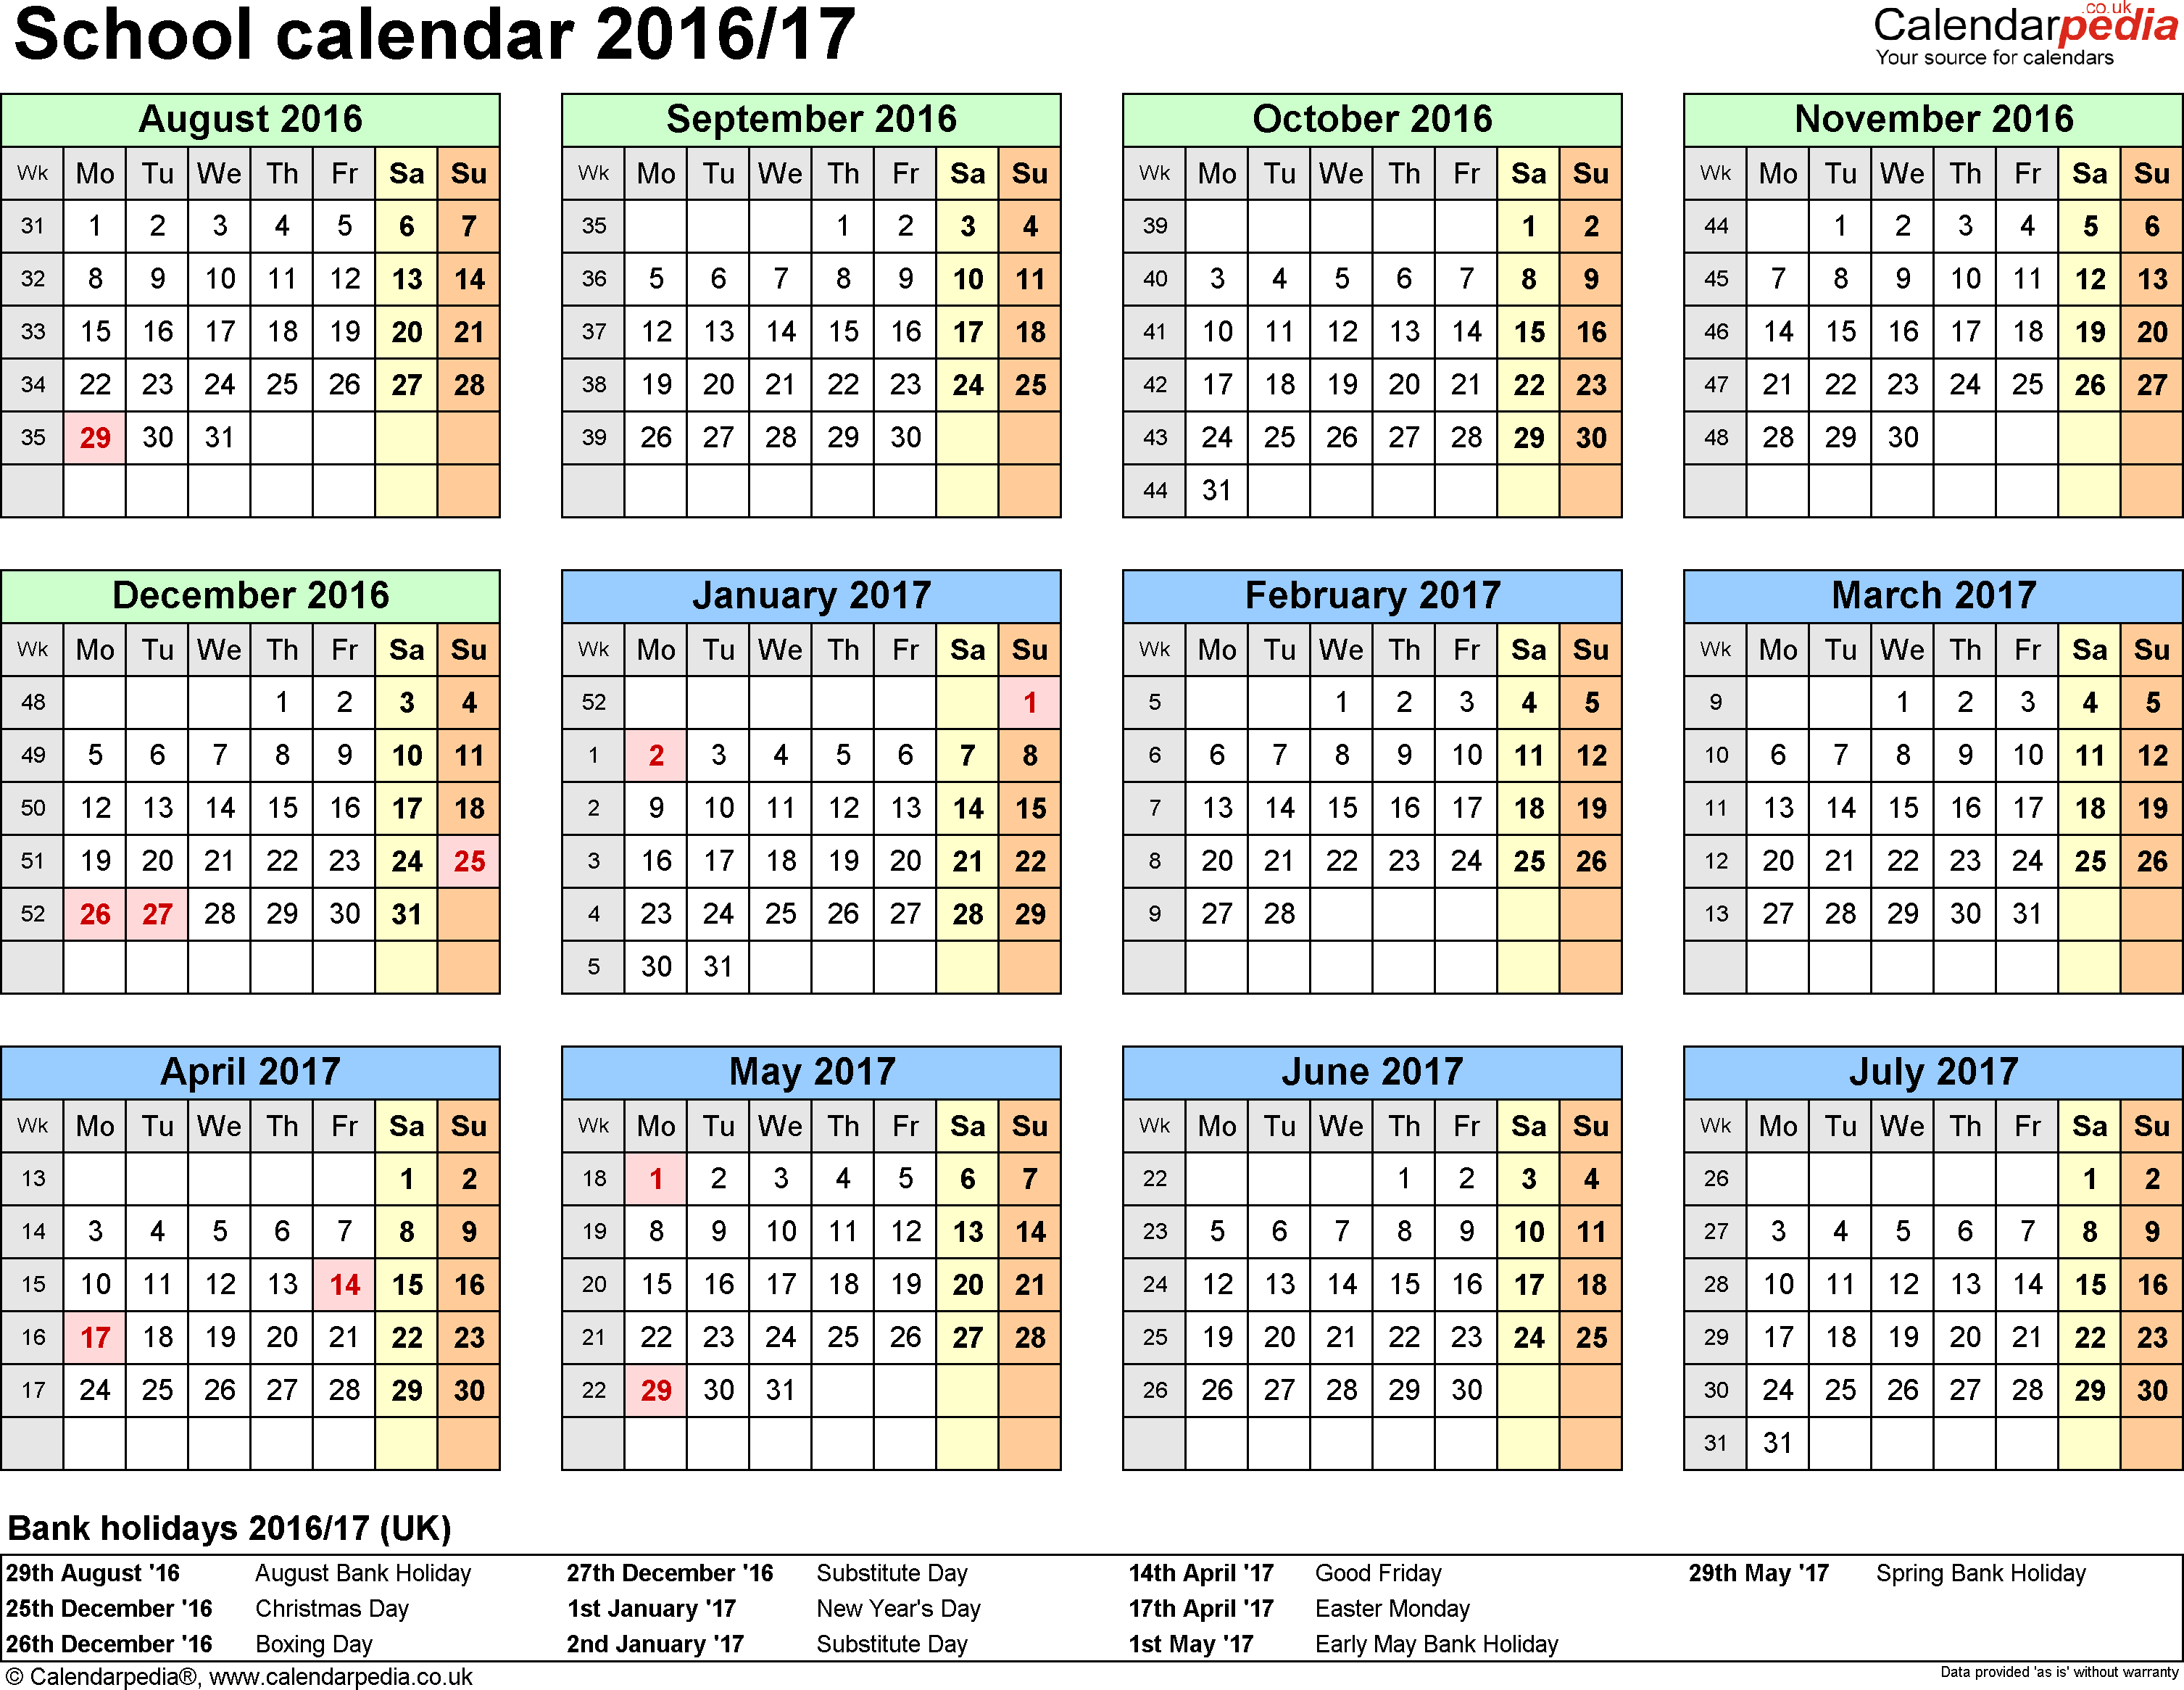 Template 4: School year calendars 2016/17 as Excel template, year at a glance, 1 page